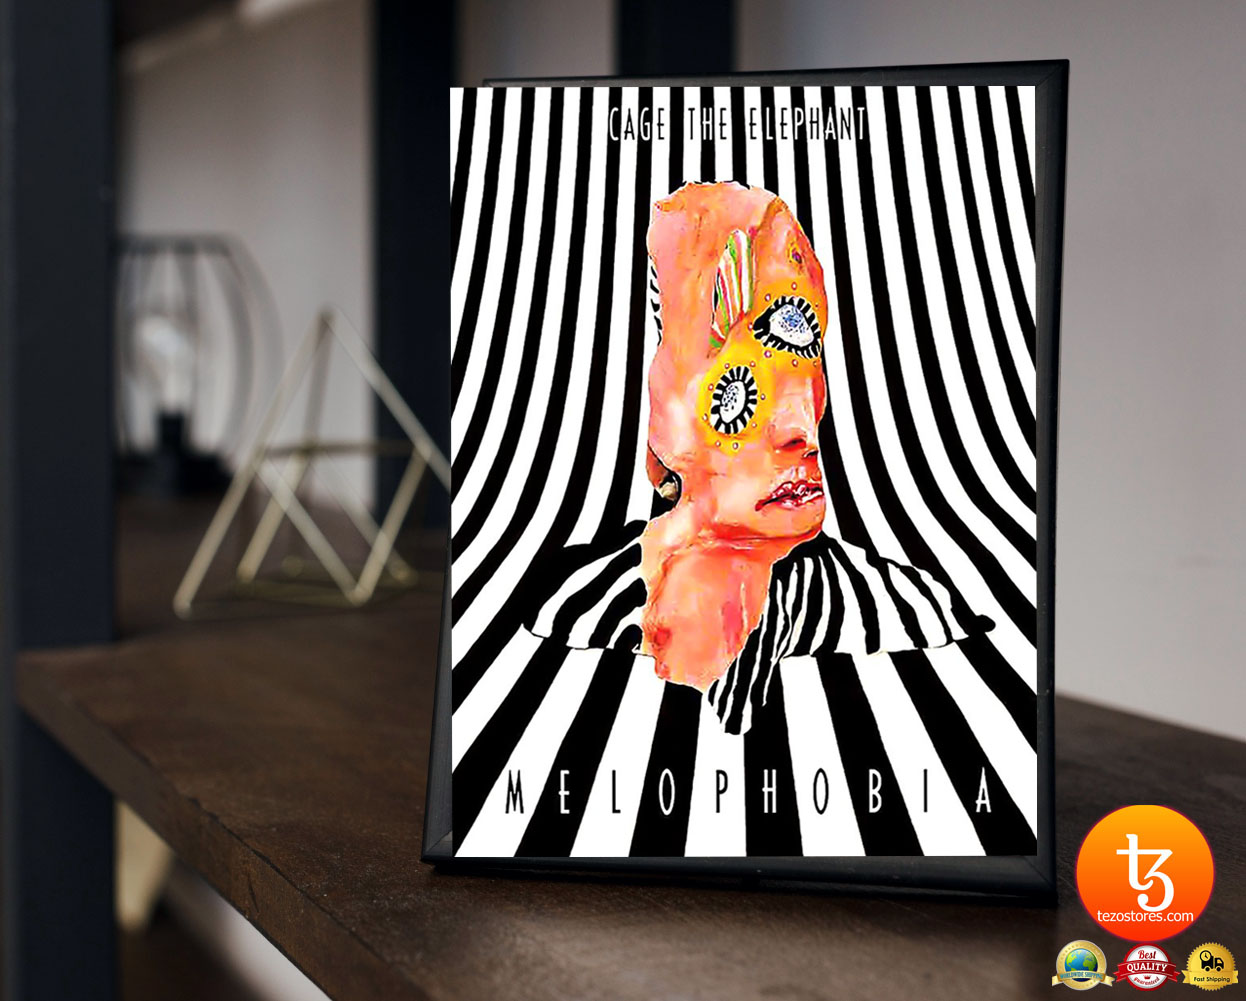 Cage the elephant melophobia poster 23